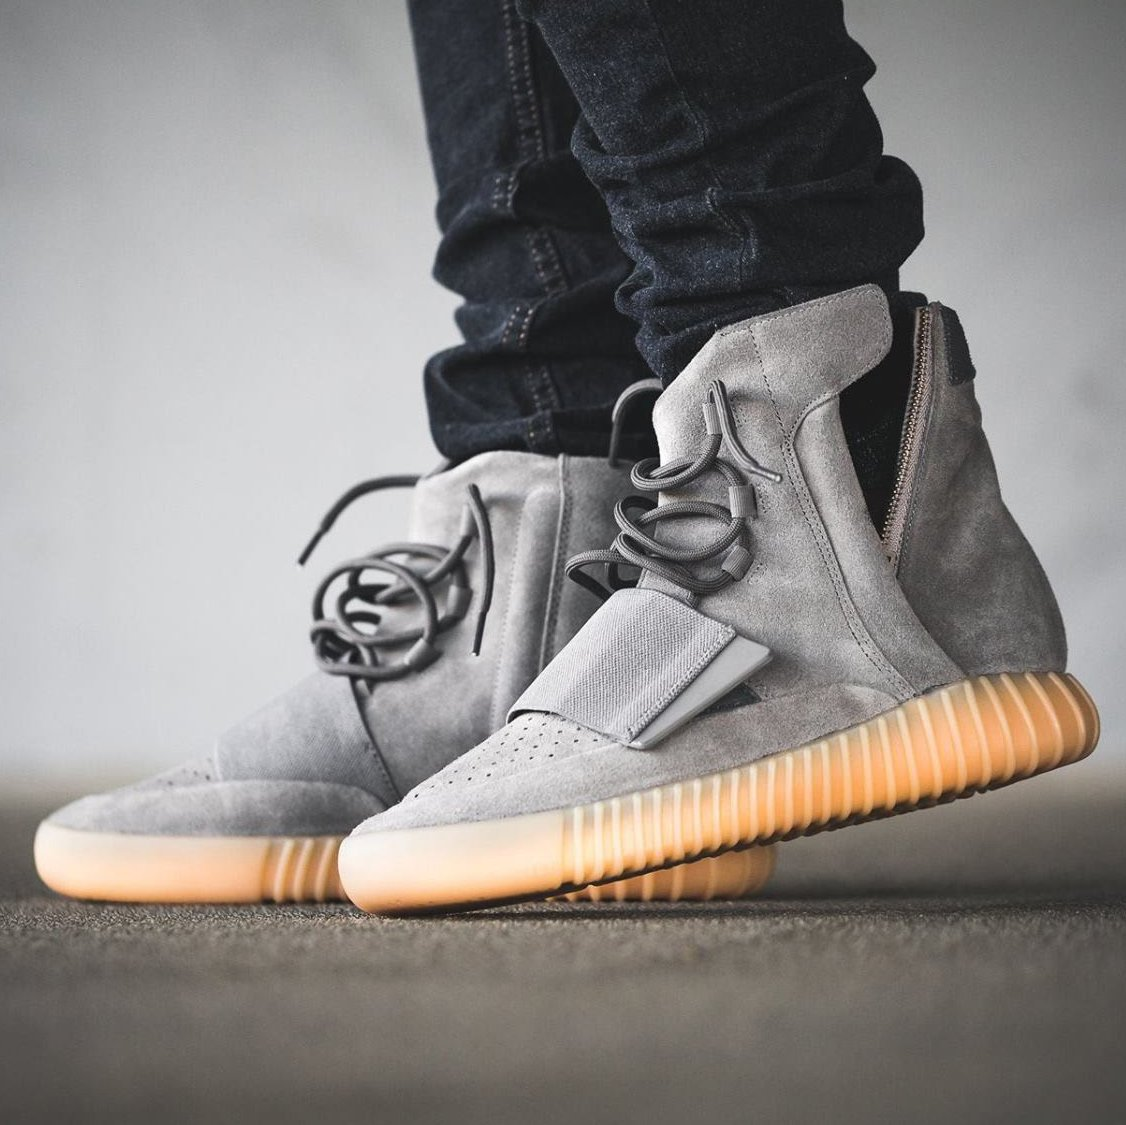 the best attitude 0115a 5a2db Adidas Yeezy Boost 750 Gum » Petagadget